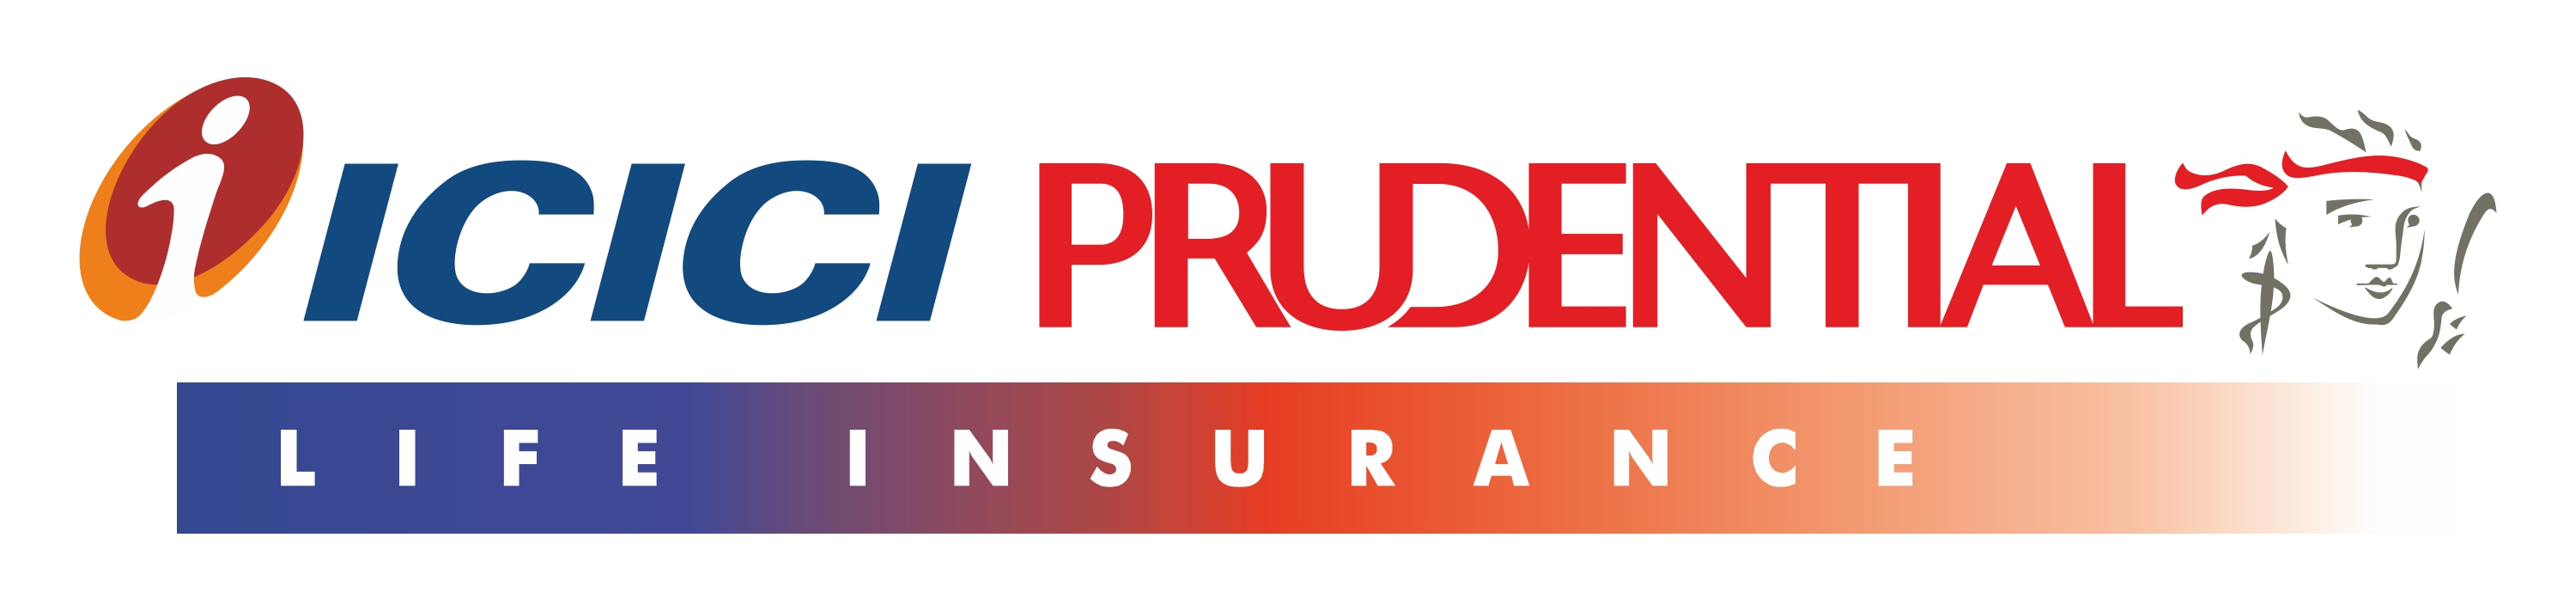 Prudential Life Insurance Quote Adorable Prudential Life Insurance Quotes  44Billionlater